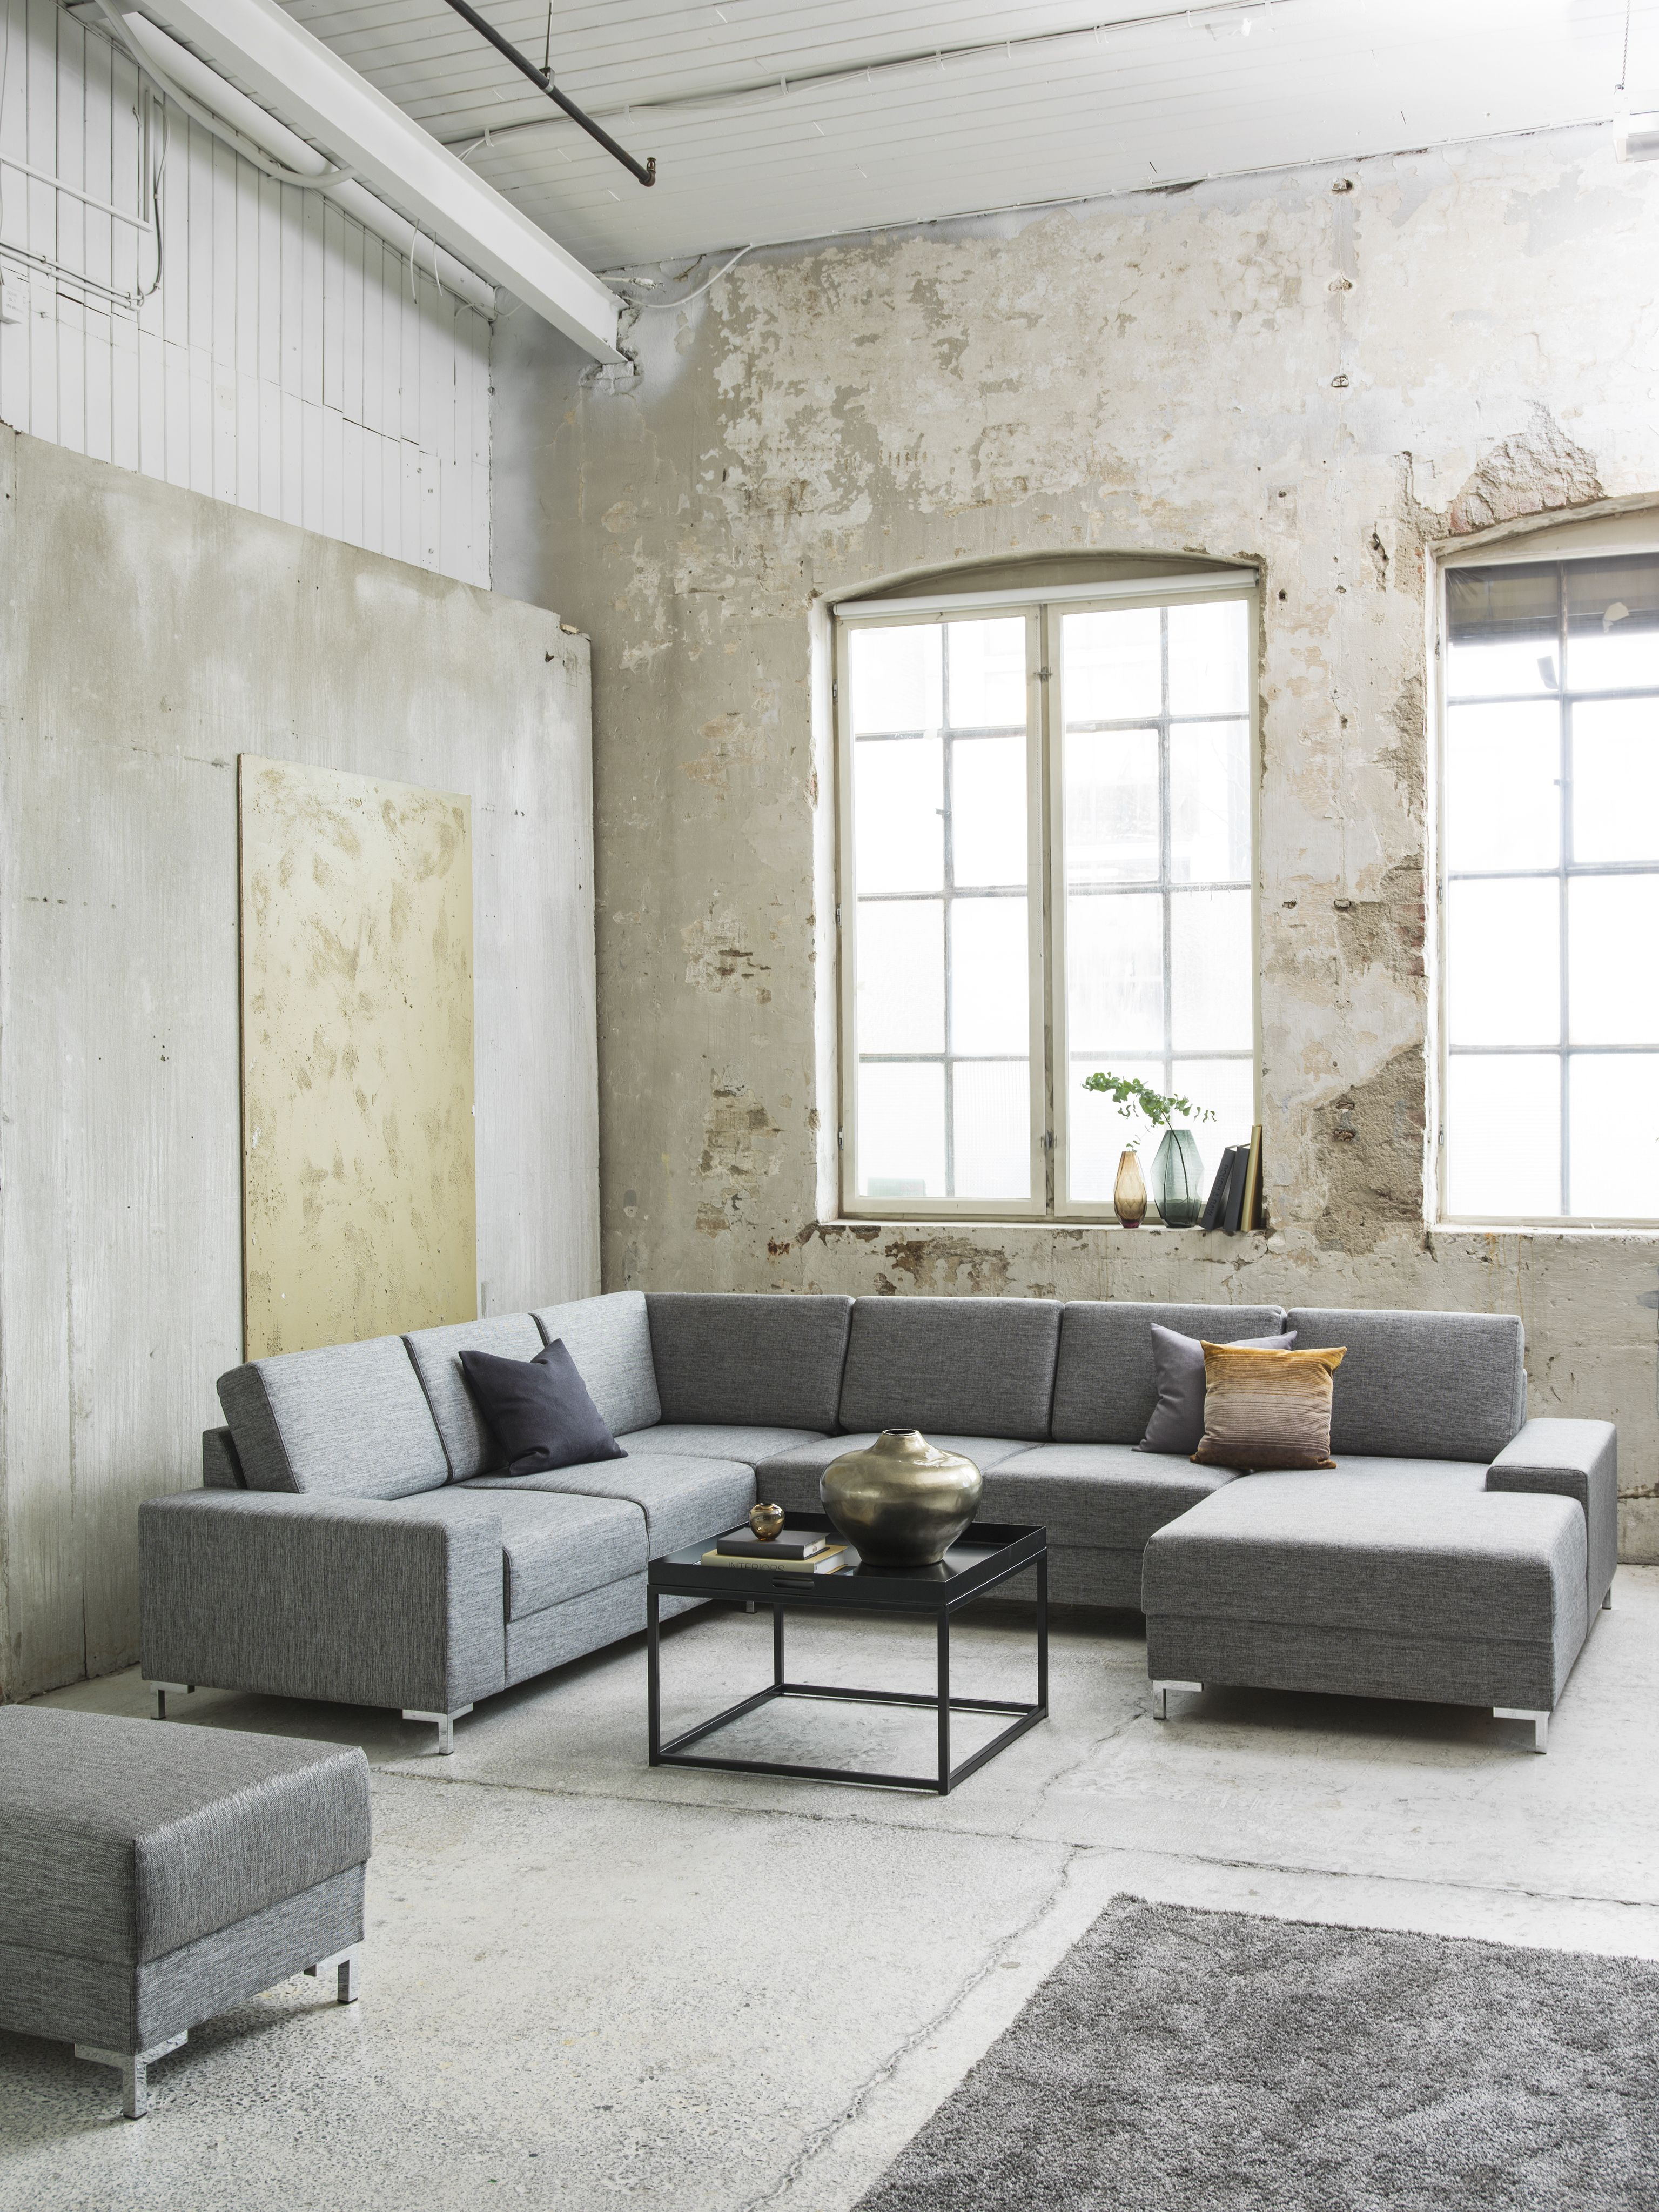 skeidar sofa dimensions in feet nora fra fagerheim lookbook stue pinterest